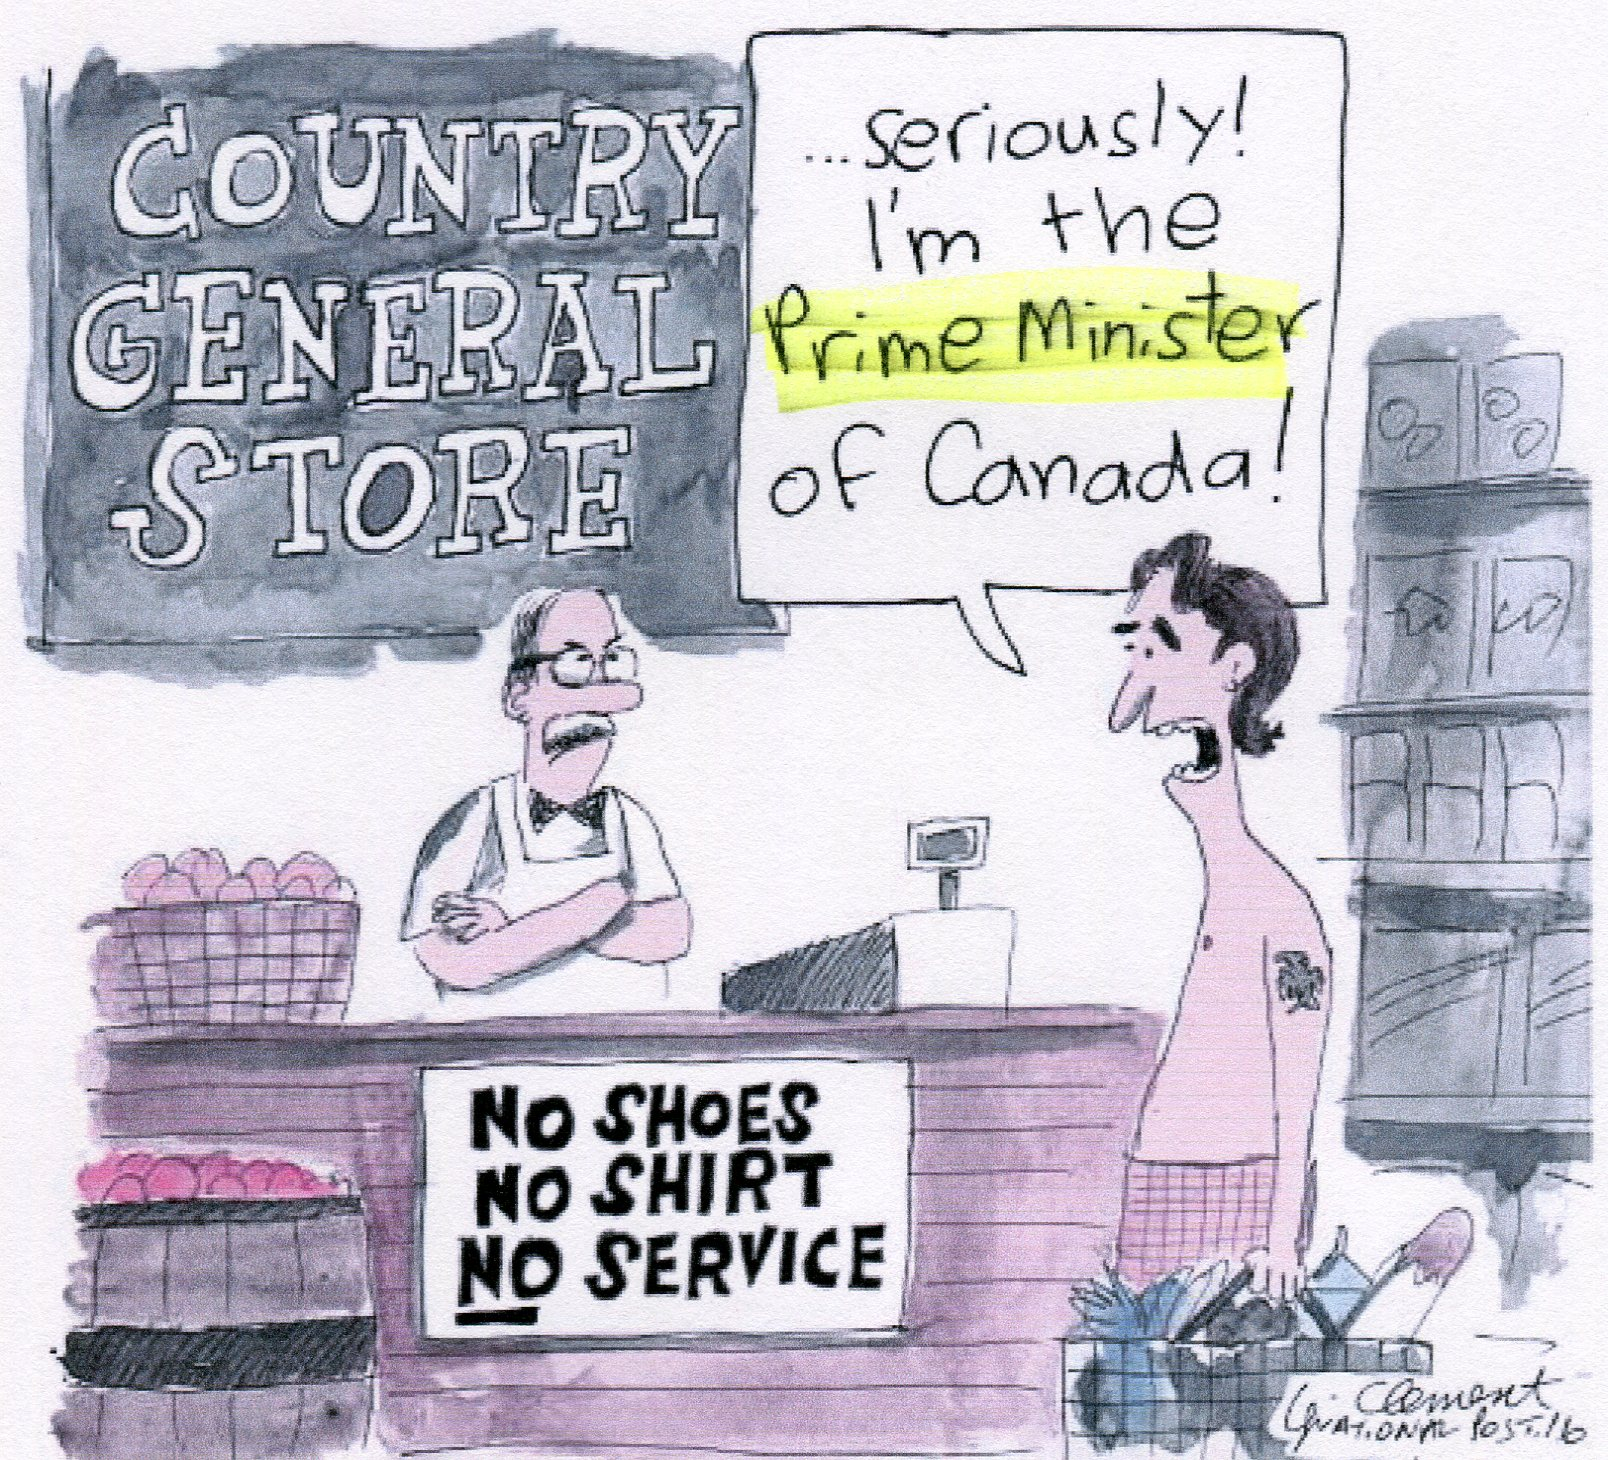 TrudeauShirtlesCartoon